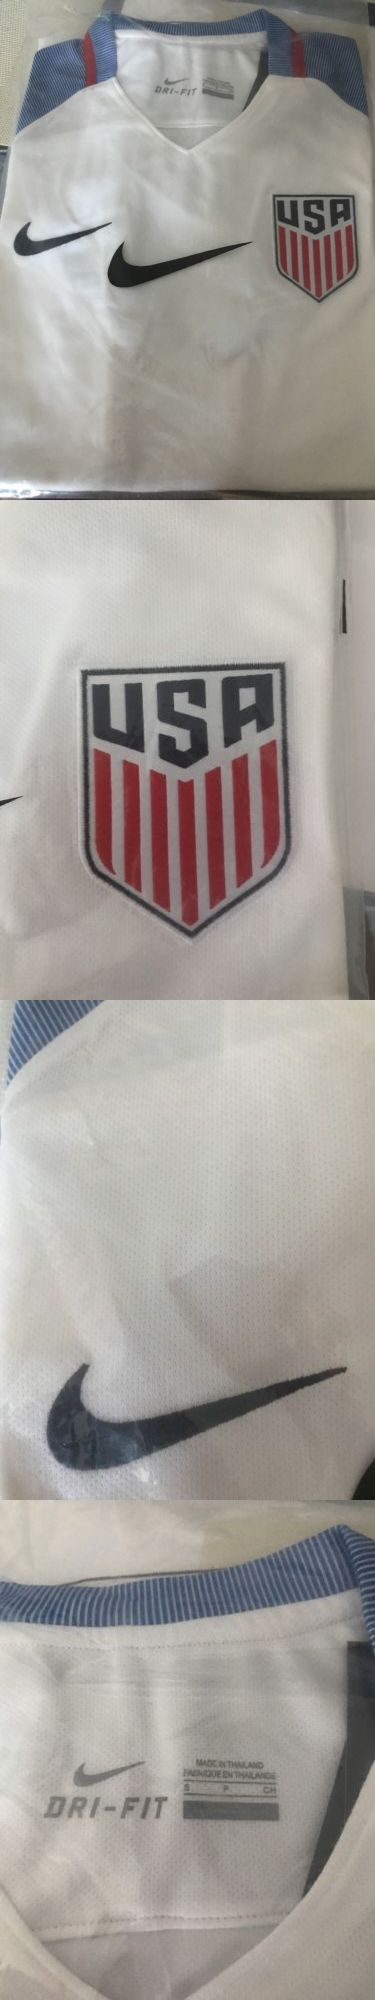 Soccer-National Teams 2891: ????New Usa Soccer Team Home 2017 Jersey Men White Size Small ???? ???? ???? -> BUY IT NOW ONLY: $45 on eBay!